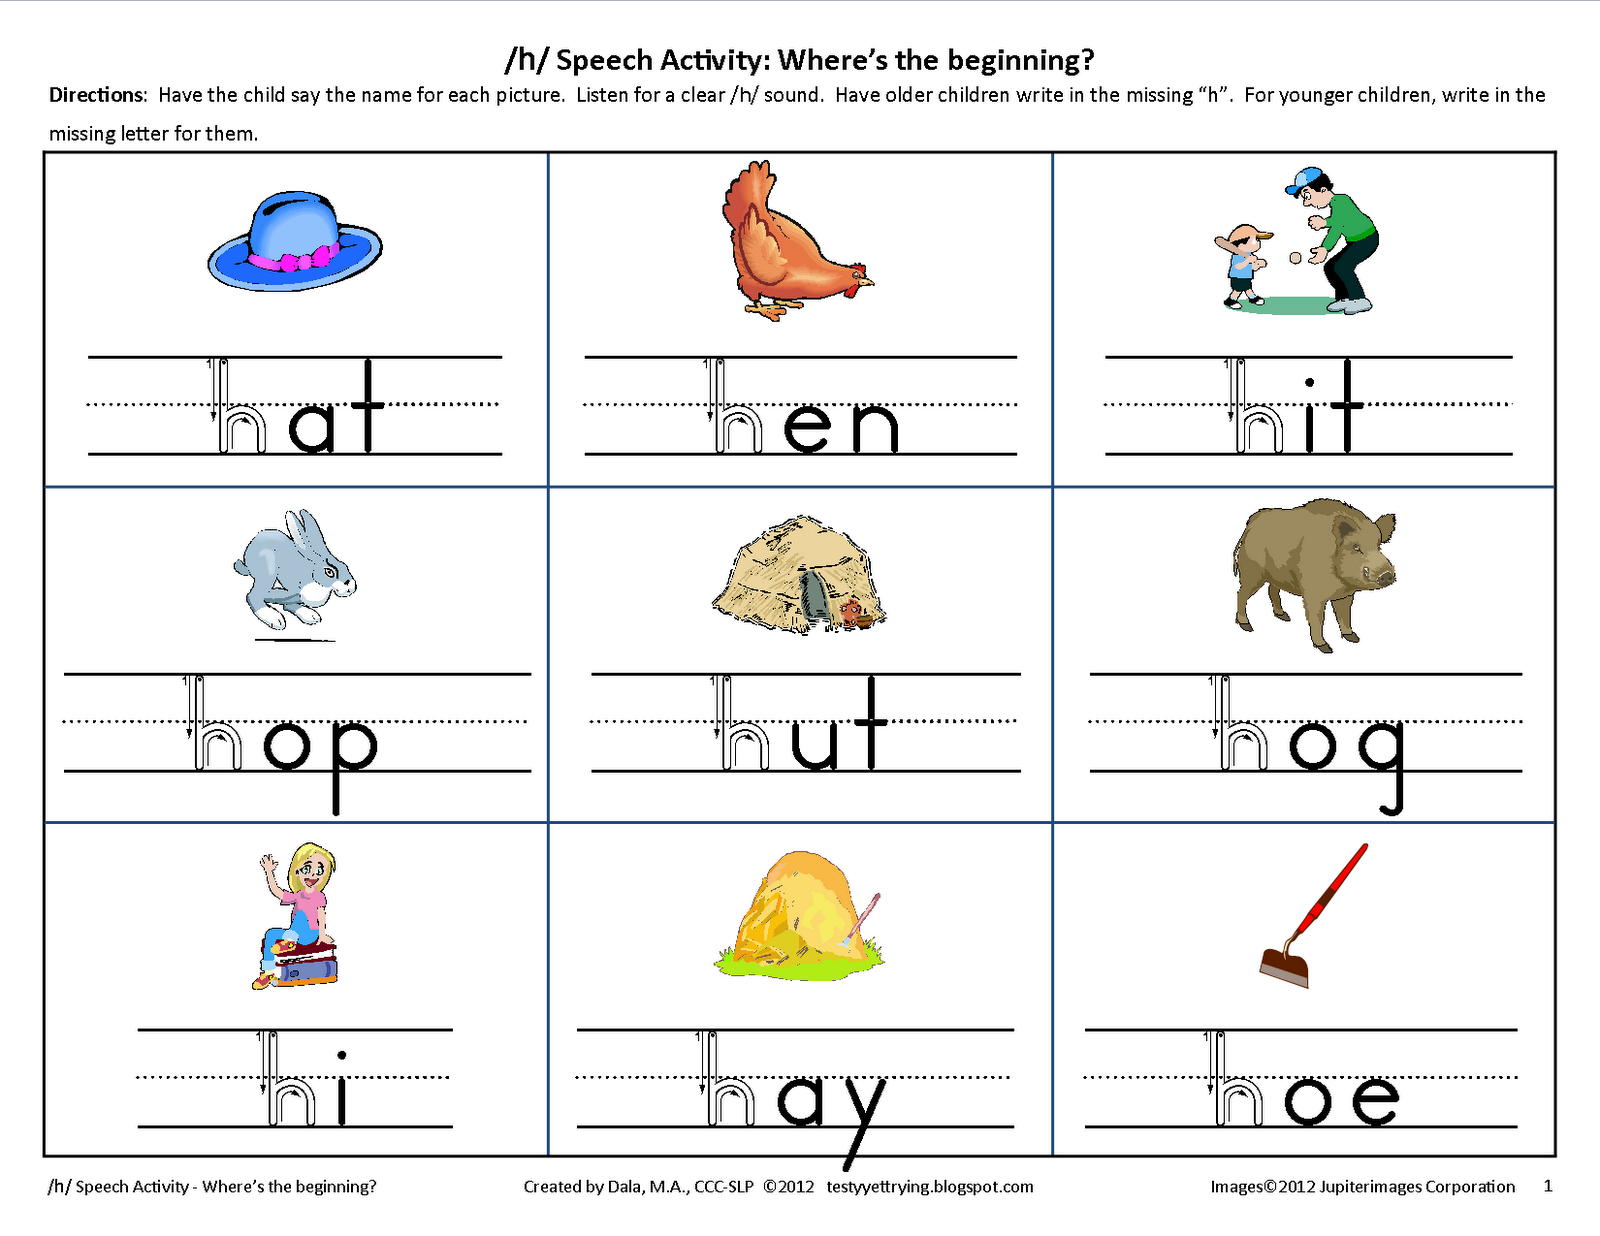 Weirdmailus  Wonderful Testy Yet Trying Initial H Speech Worksheet With Engaging Make Classroom Teachers Happy Reinforce Phonics And Handwriting And Practice Speech All At The Same Time With Extraordinary Flower Worksheets Also Phonics Worksheets St Grade In Addition Line Plot Worksheets Nd Grade And Probability Worksheet High School As Well As Capacity Conversion Worksheet Additionally Free Online Worksheets From Testyyettryingblogspotcom With Weirdmailus  Engaging Testy Yet Trying Initial H Speech Worksheet With Extraordinary Make Classroom Teachers Happy Reinforce Phonics And Handwriting And Practice Speech All At The Same Time And Wonderful Flower Worksheets Also Phonics Worksheets St Grade In Addition Line Plot Worksheets Nd Grade From Testyyettryingblogspotcom